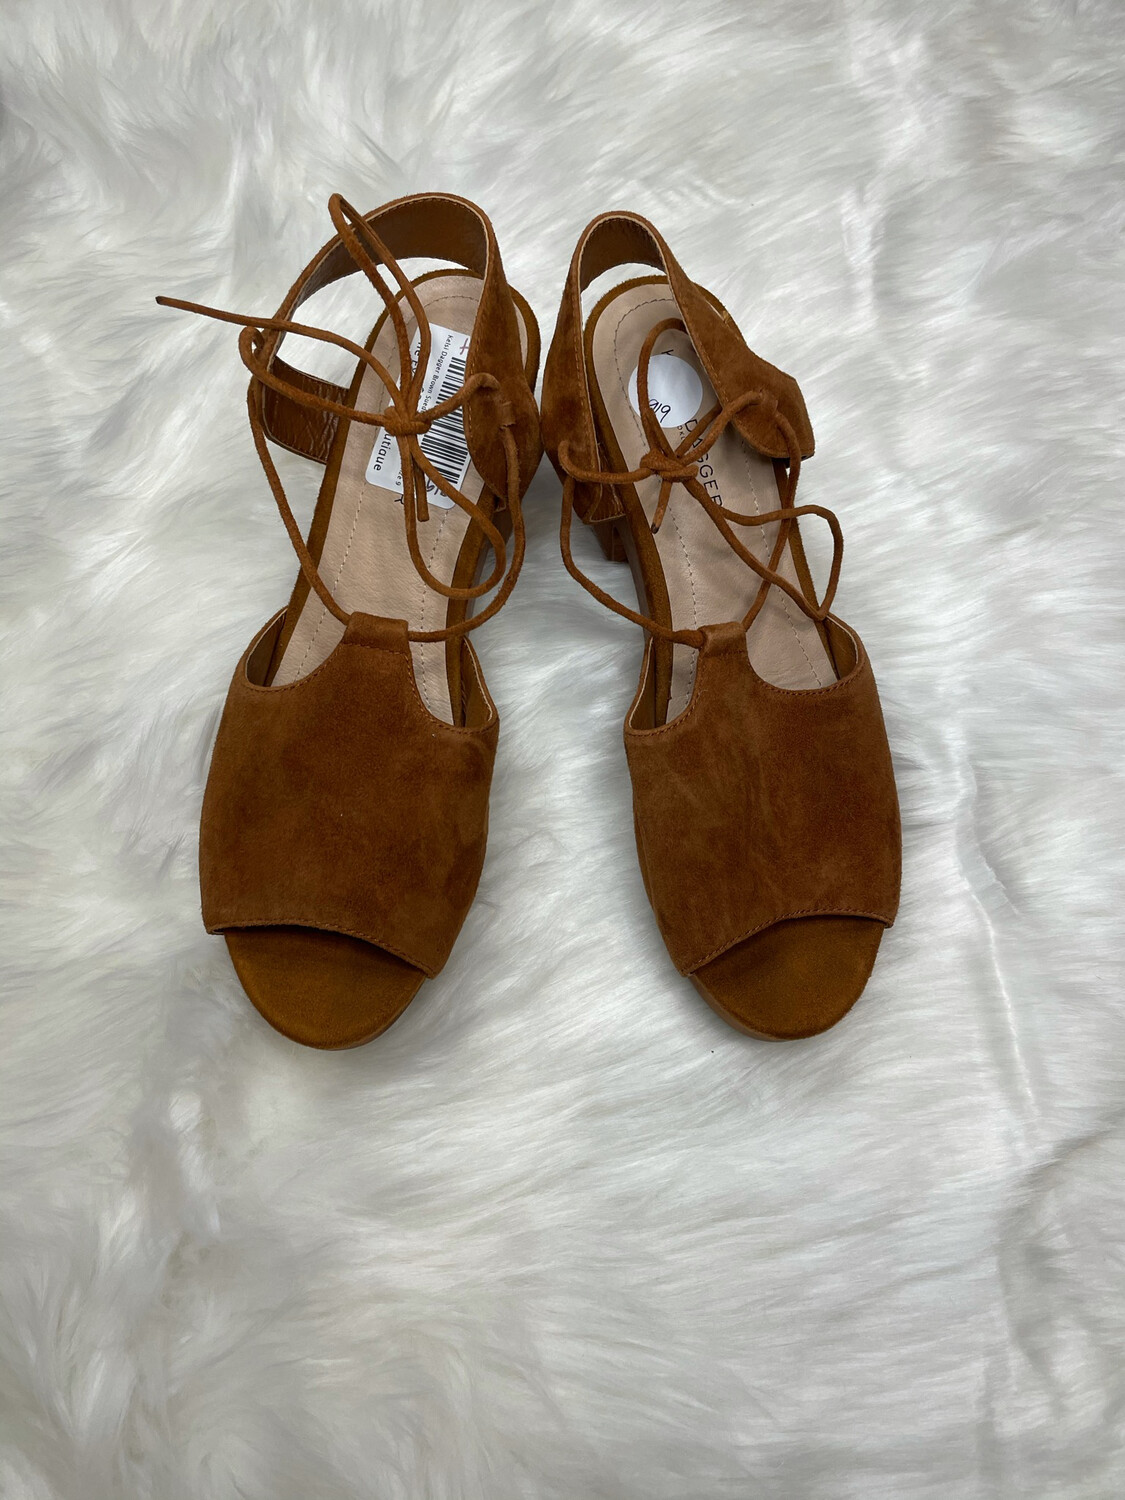 Kelsi Dagger Brown Suede Lace Up Clogs - Size 9